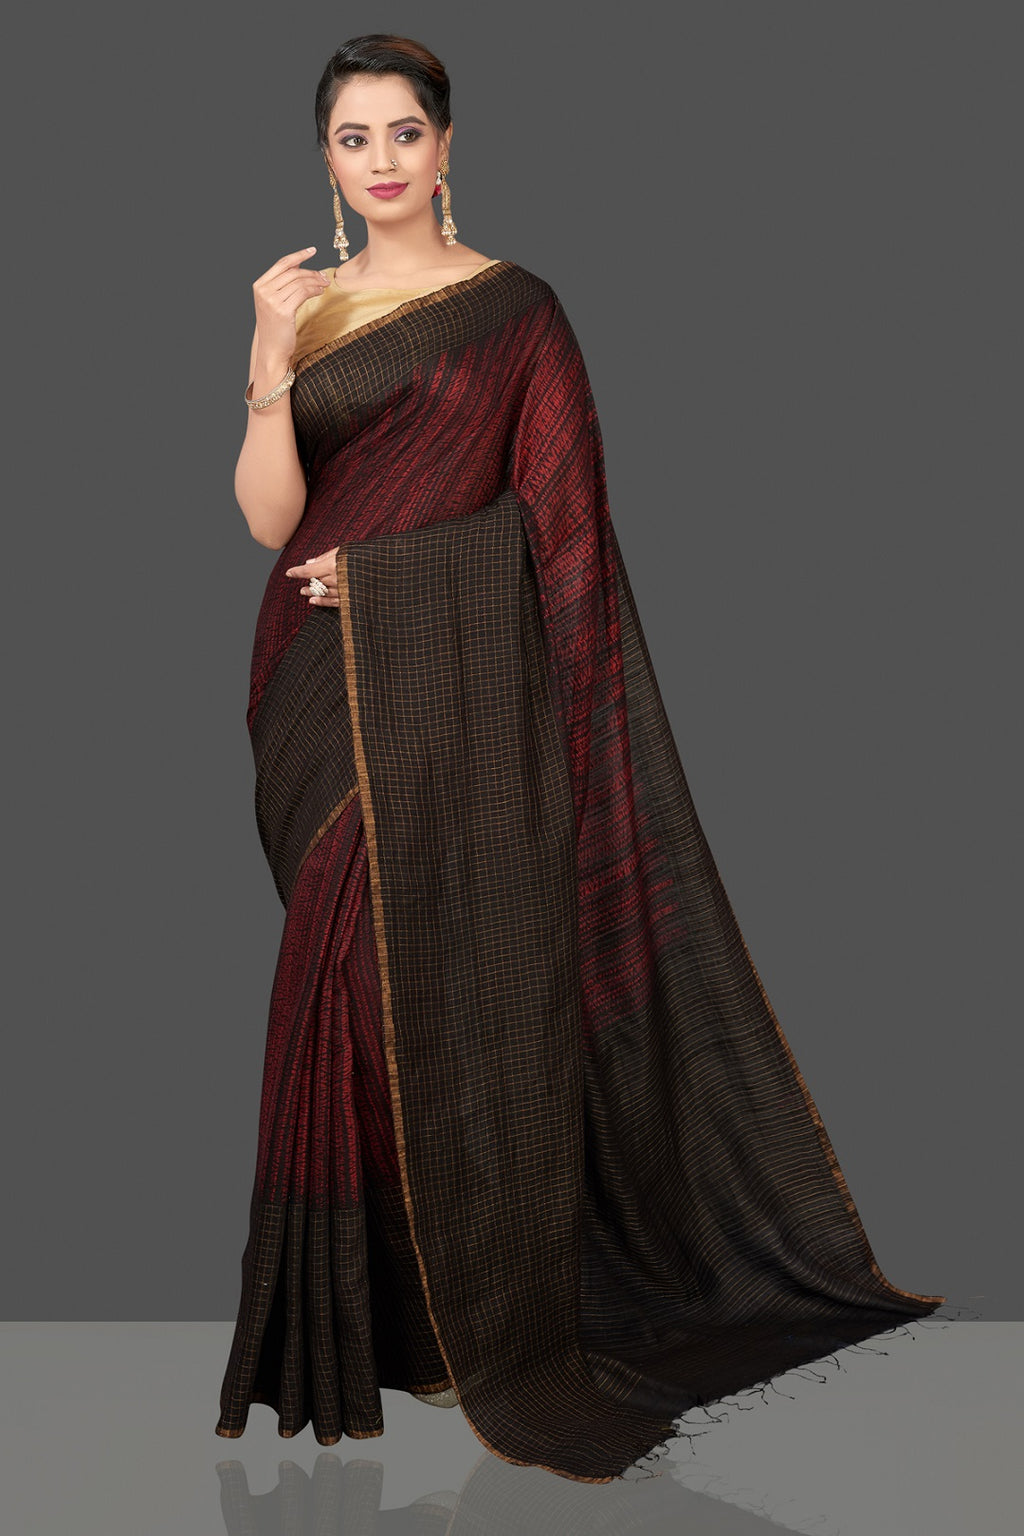 Shop gorgeous black and red matka shibori sari online in USA with check zari border. Flaunt Indian fashion in USA with a stunning collection of handwoven sarees, cotton sarees, pure silk sarees, printed saris in USA from Pure Elegance Indian saree store in USA.-full view